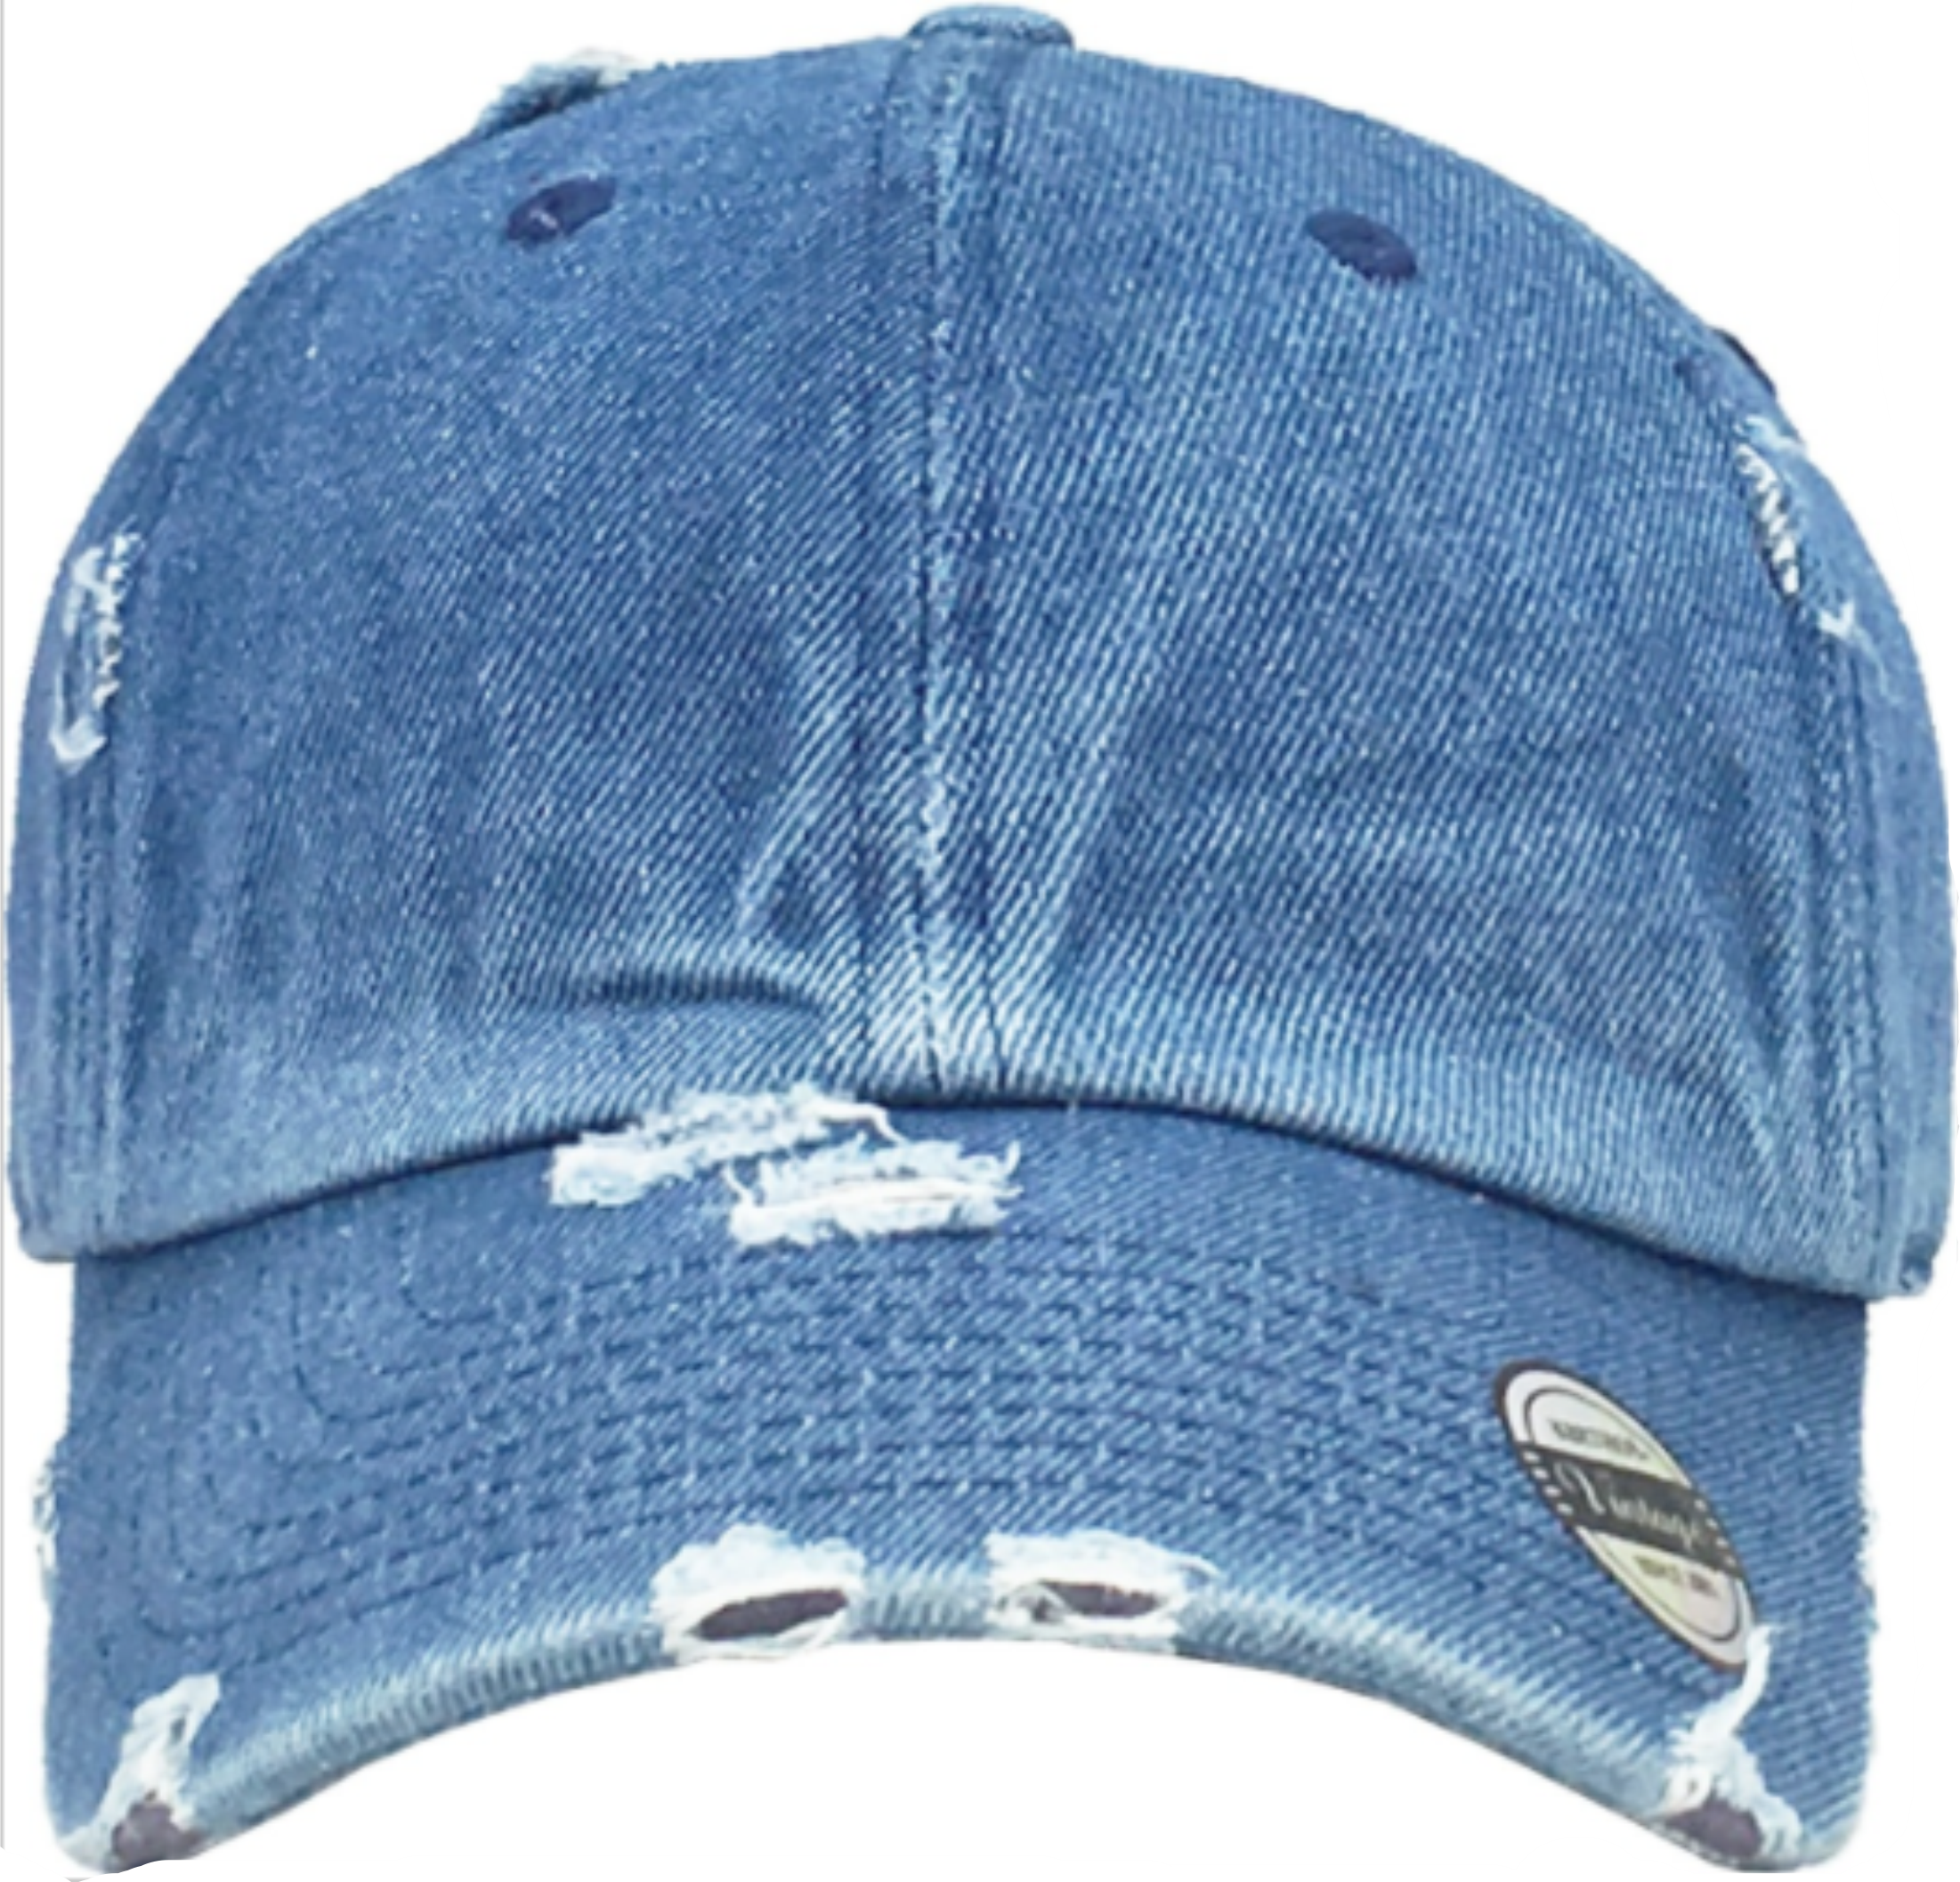 Ripped Dad Hats Tcustomize 7ebd2a00398